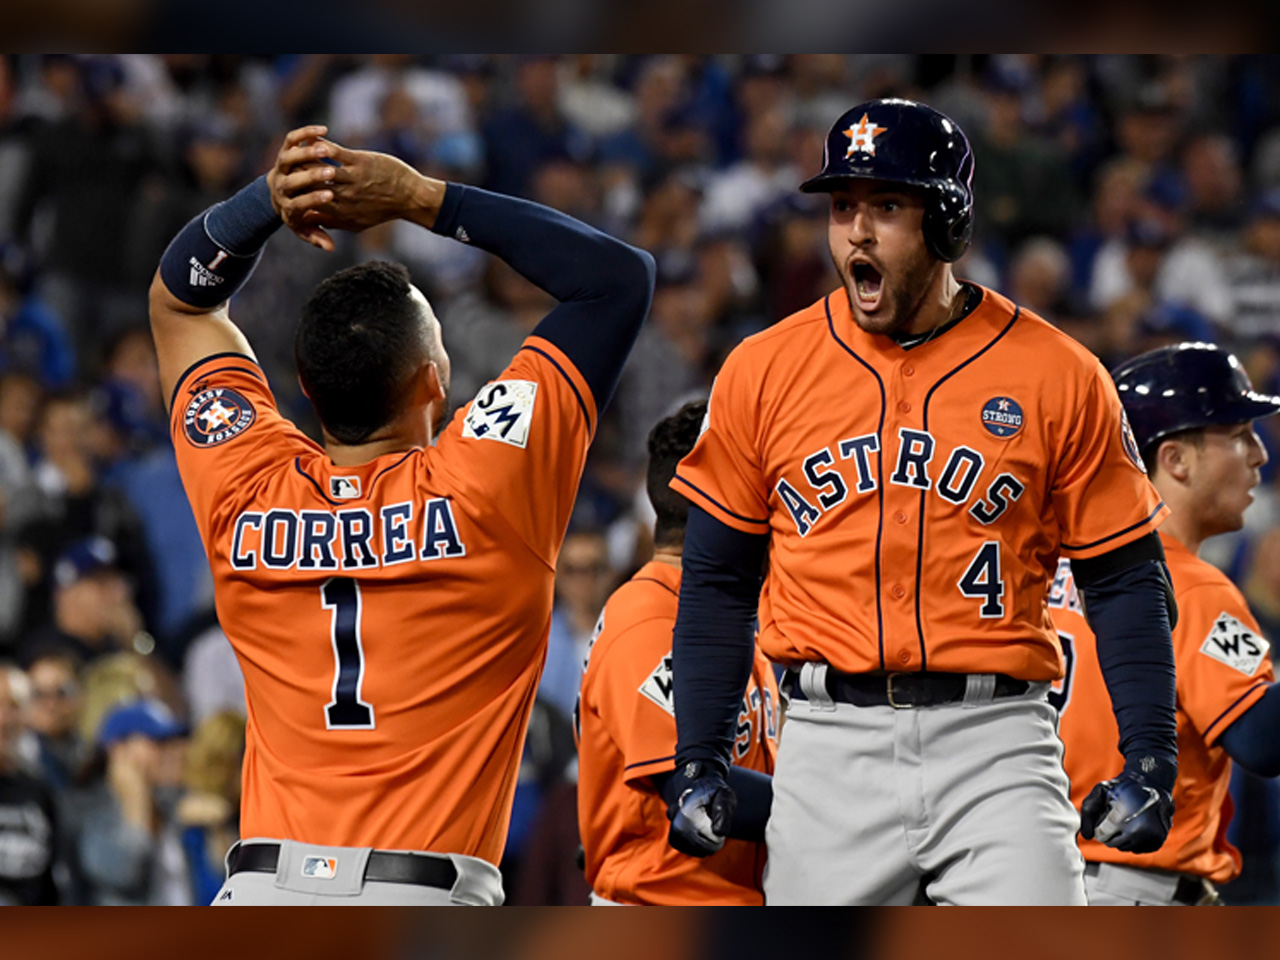 PHOTO: George Springer #4 of the Houston Astros won the 2017 Willie Mays World Series Most Valuable Player Award, Photo Date: 11/2/17. (Photo: ZUMA Press / MGN Online)